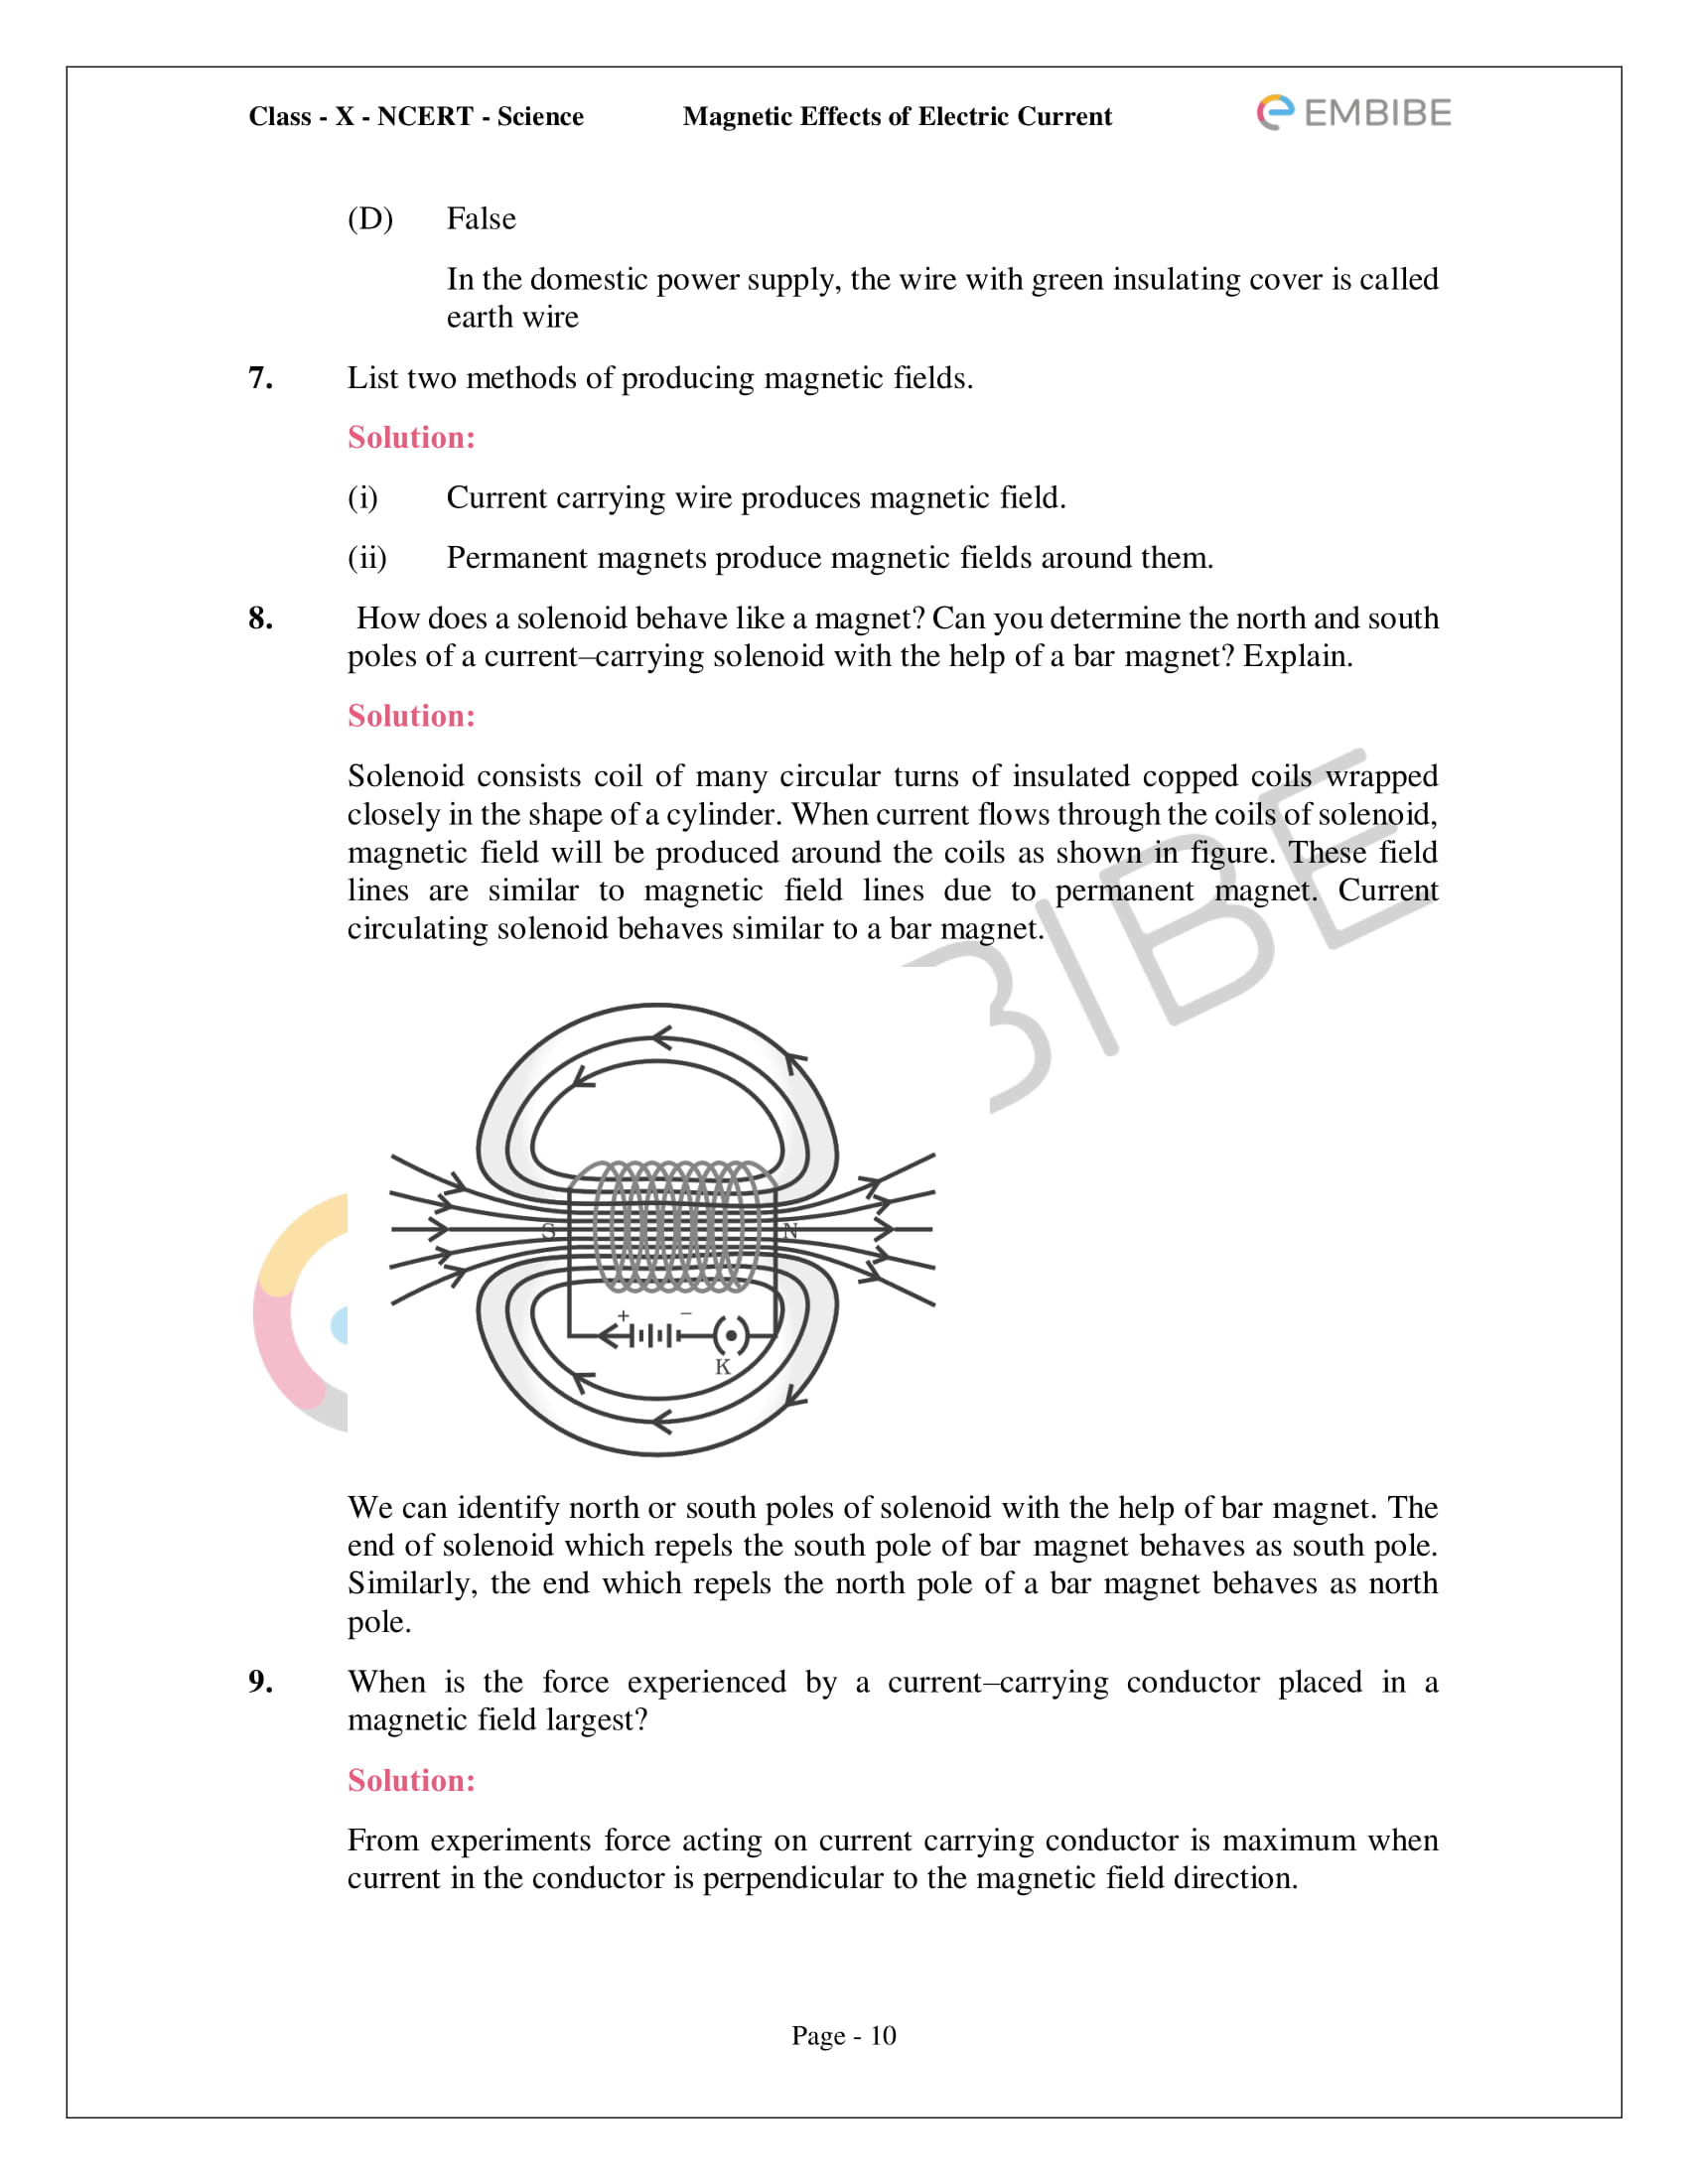 CBSE NCERT Solutions For Class 10 Science Chapter 13 - Magnetic Effects of Electric Current - 10